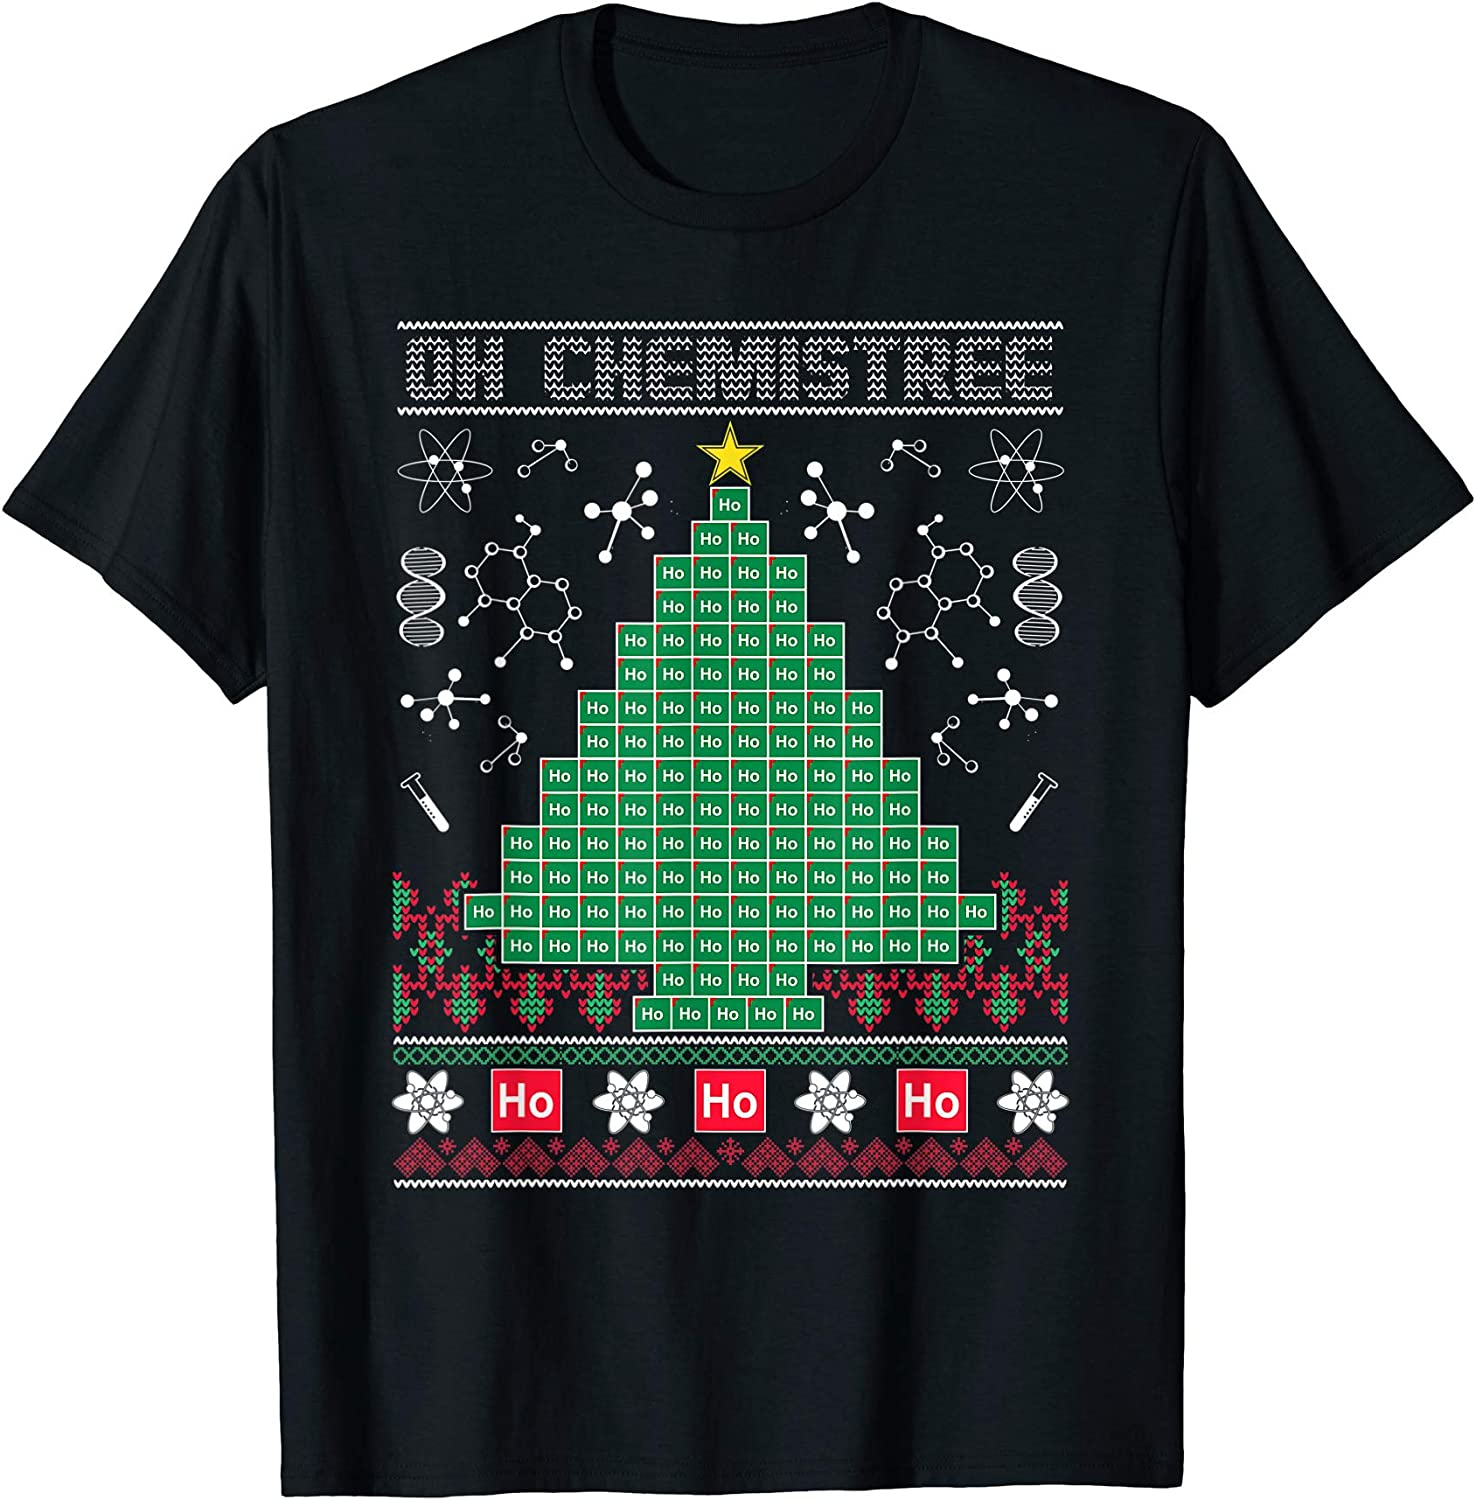 Oh Chemistree Funny Science Shirt Gift Xmas Ugly Christmas Sweater Sweatshirt